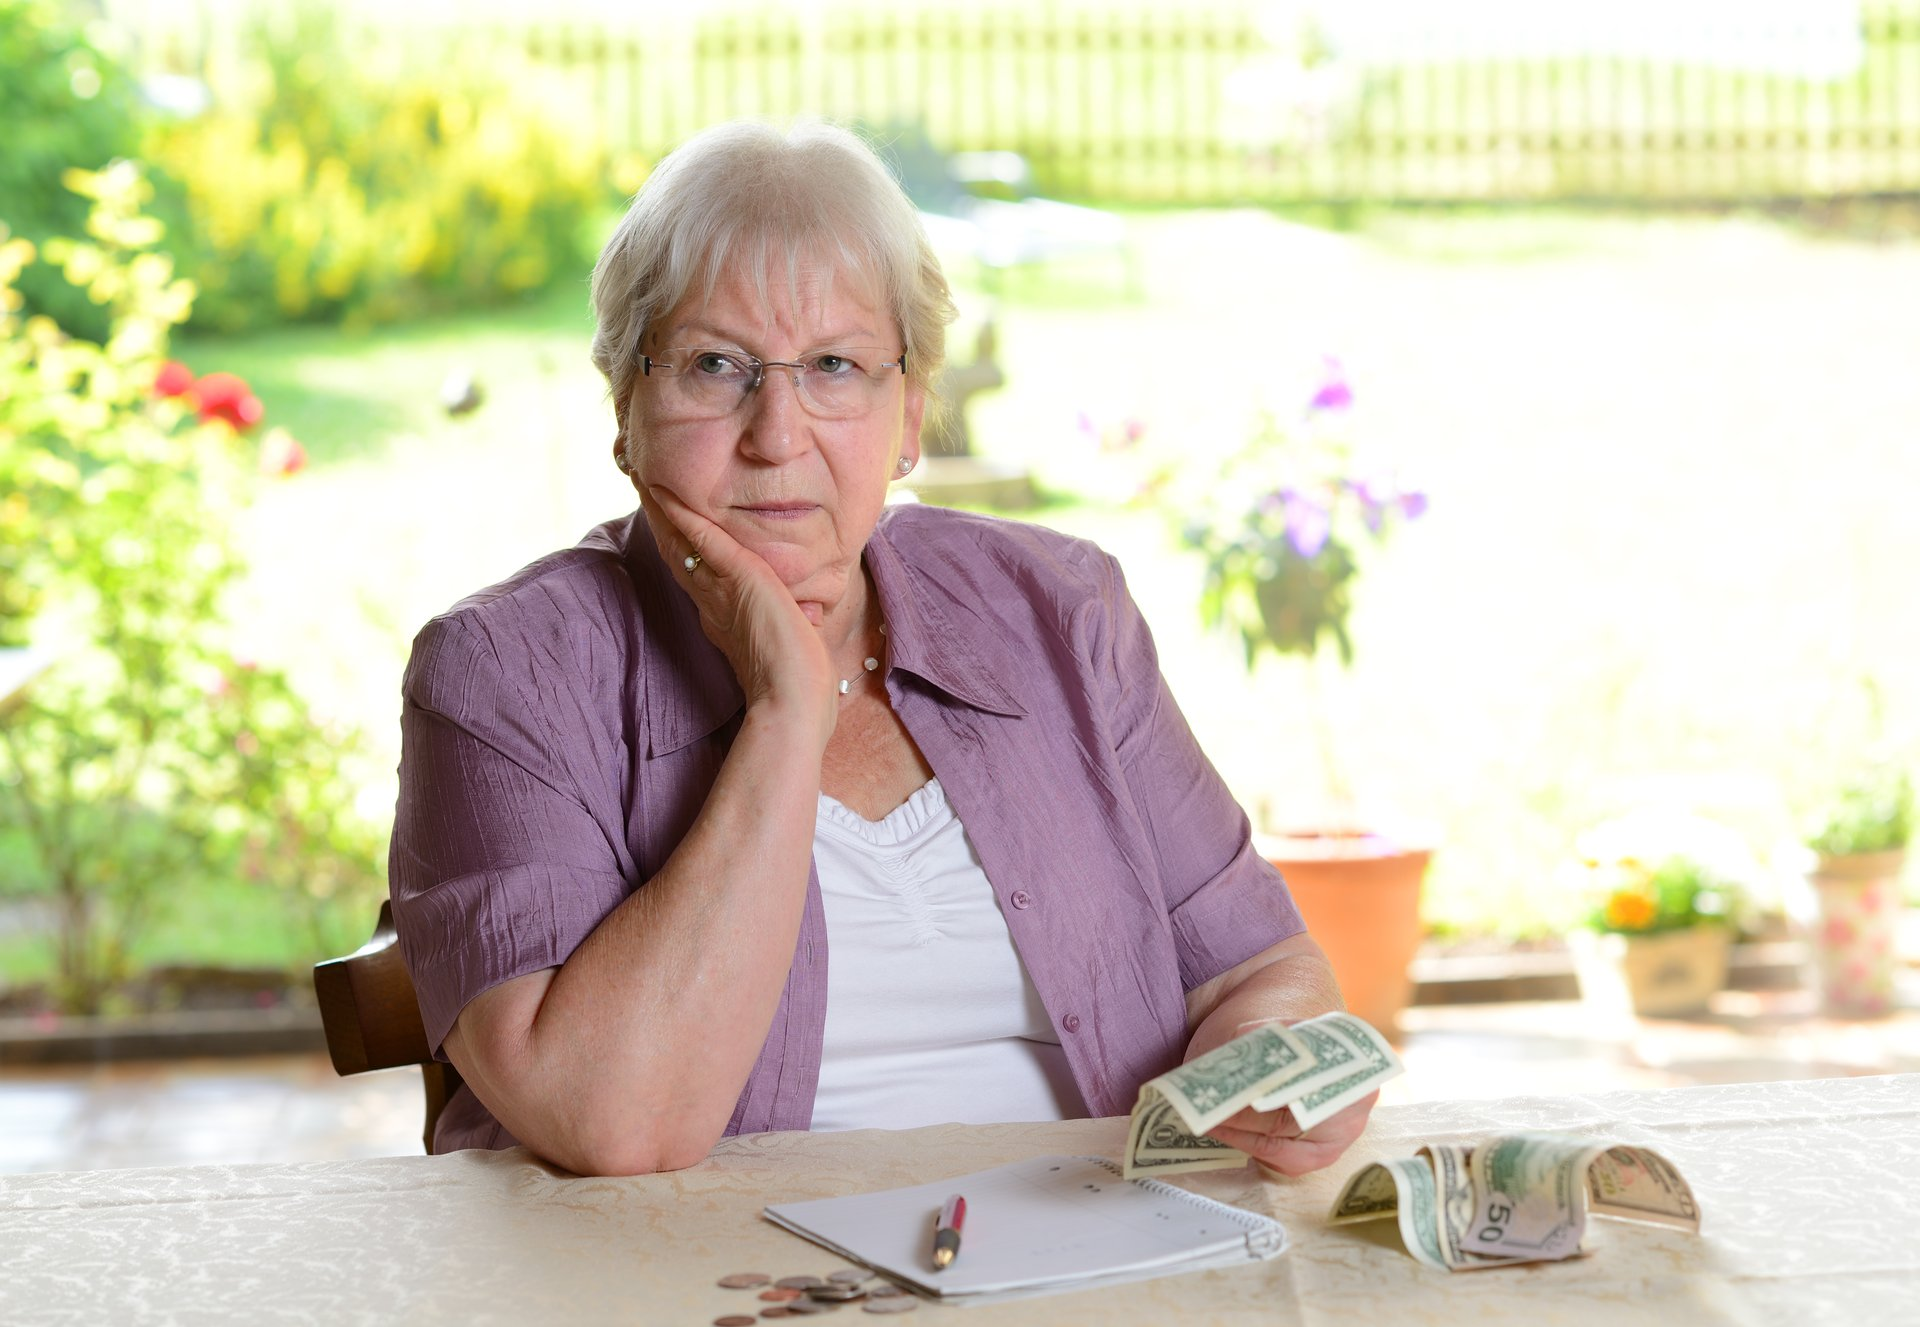 Older woman counting money